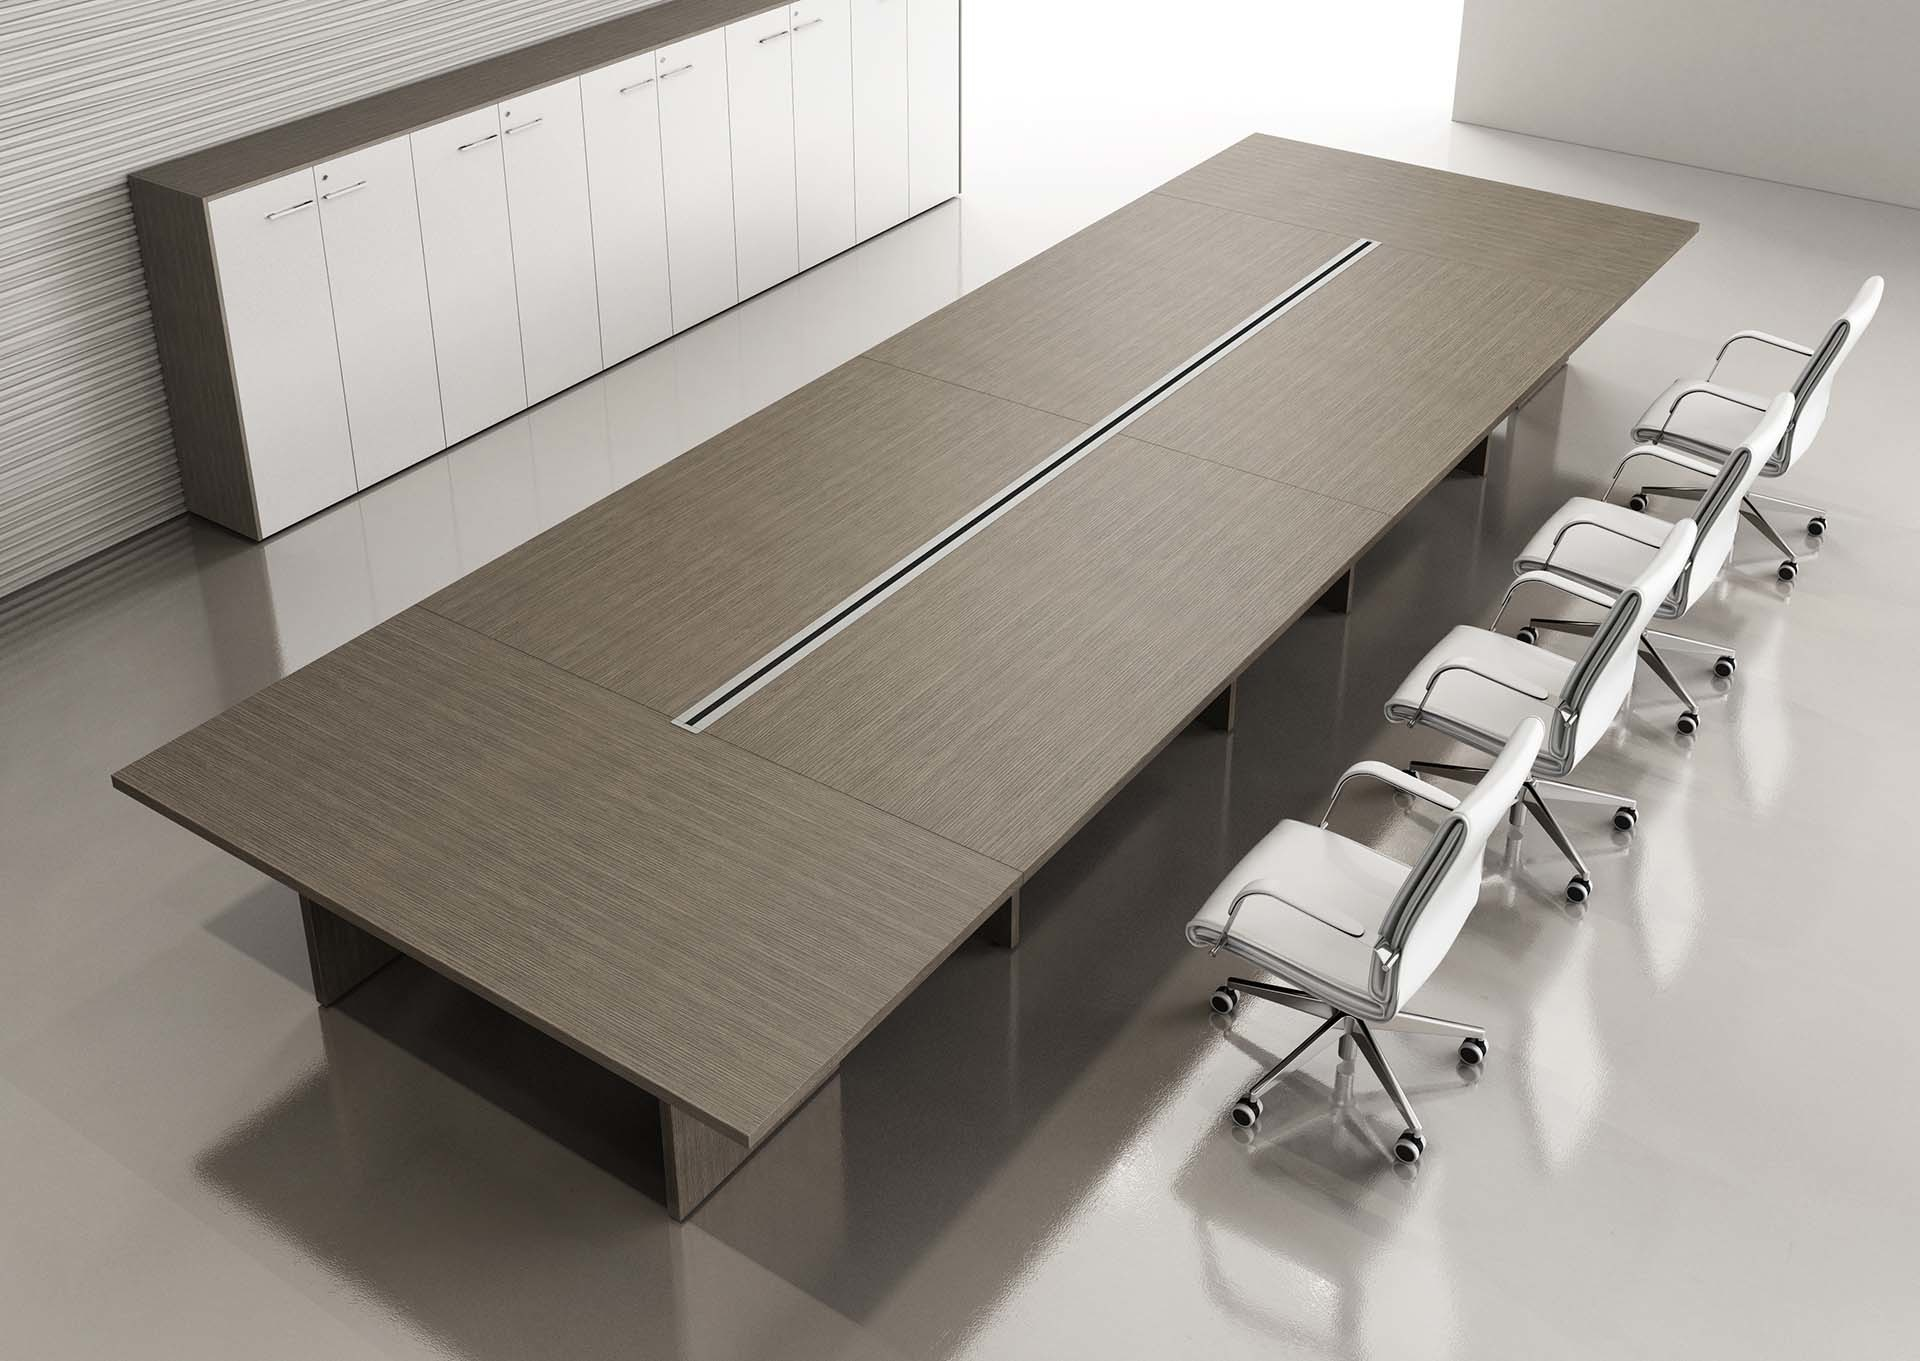 meeting-table-ducted-xeno-manager-02.jpg